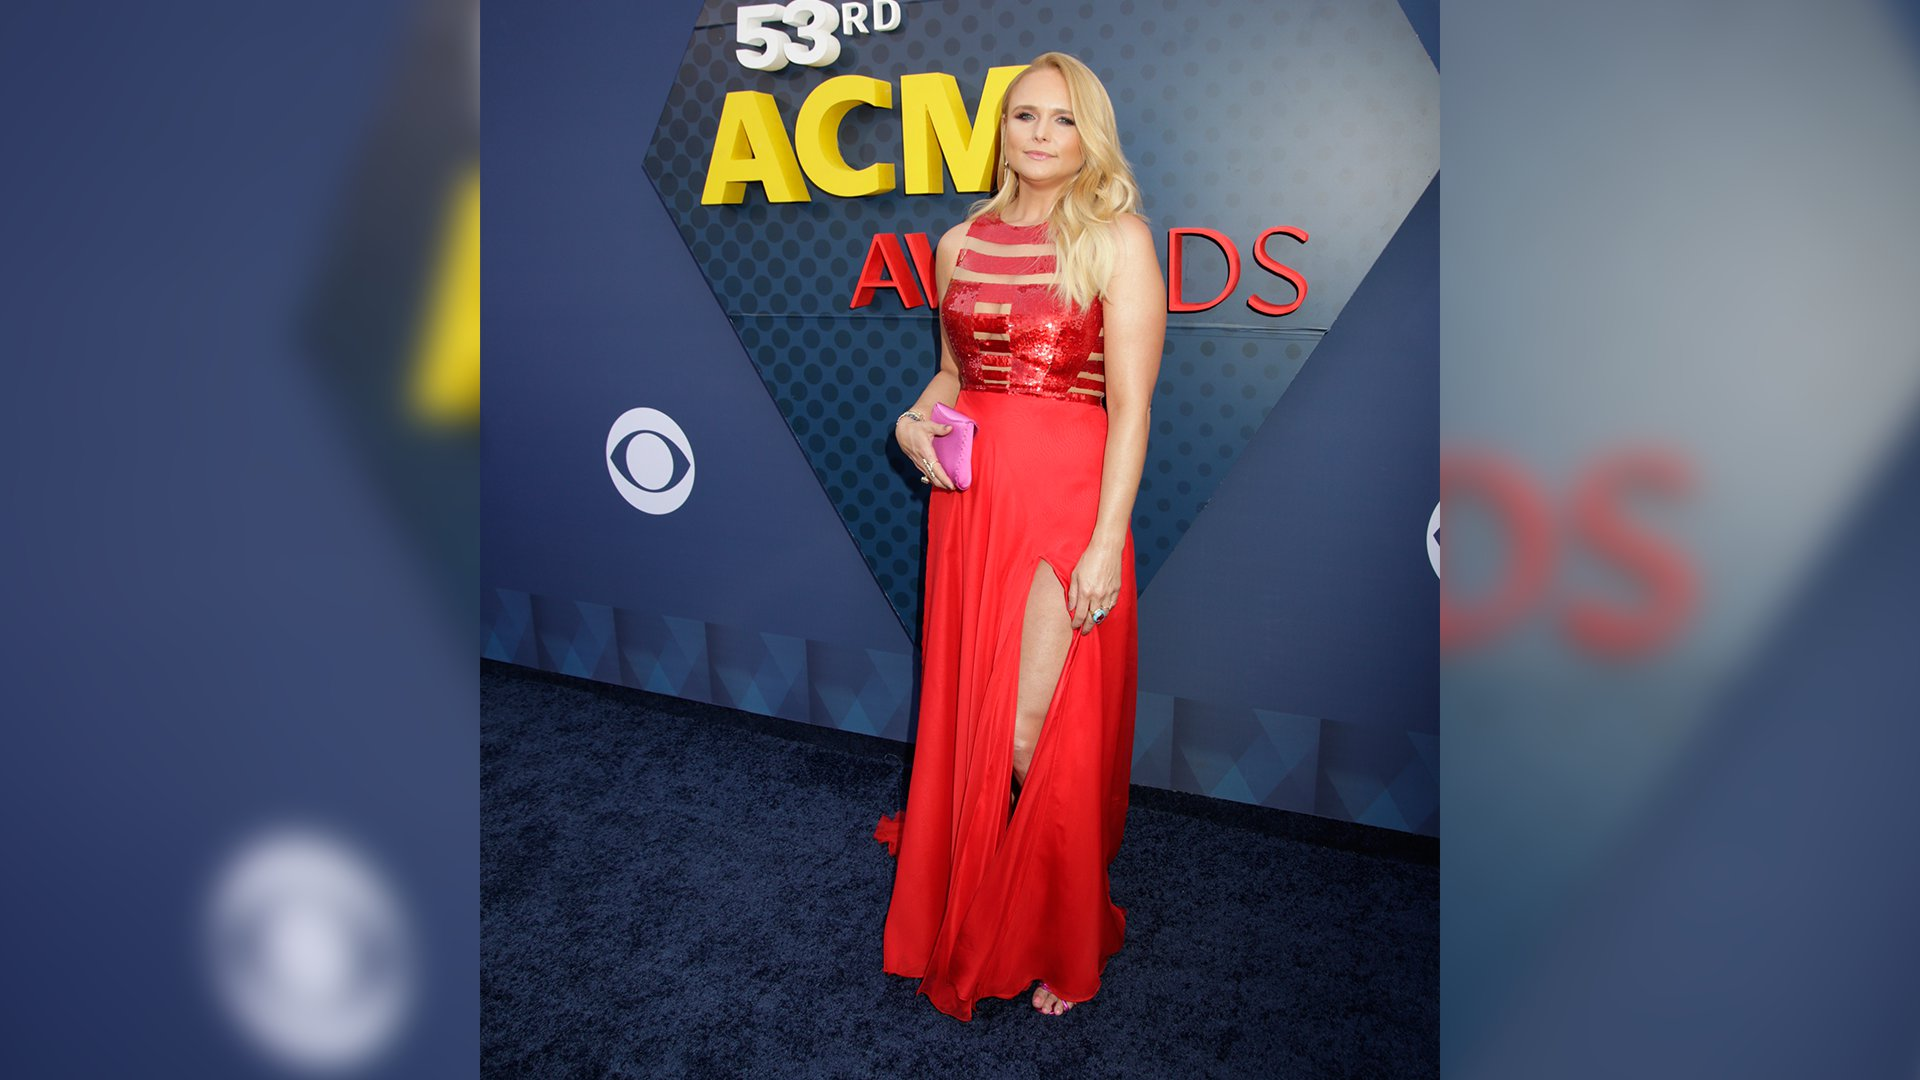 Red is the perfect color for Miranda Lambert to wear before playing